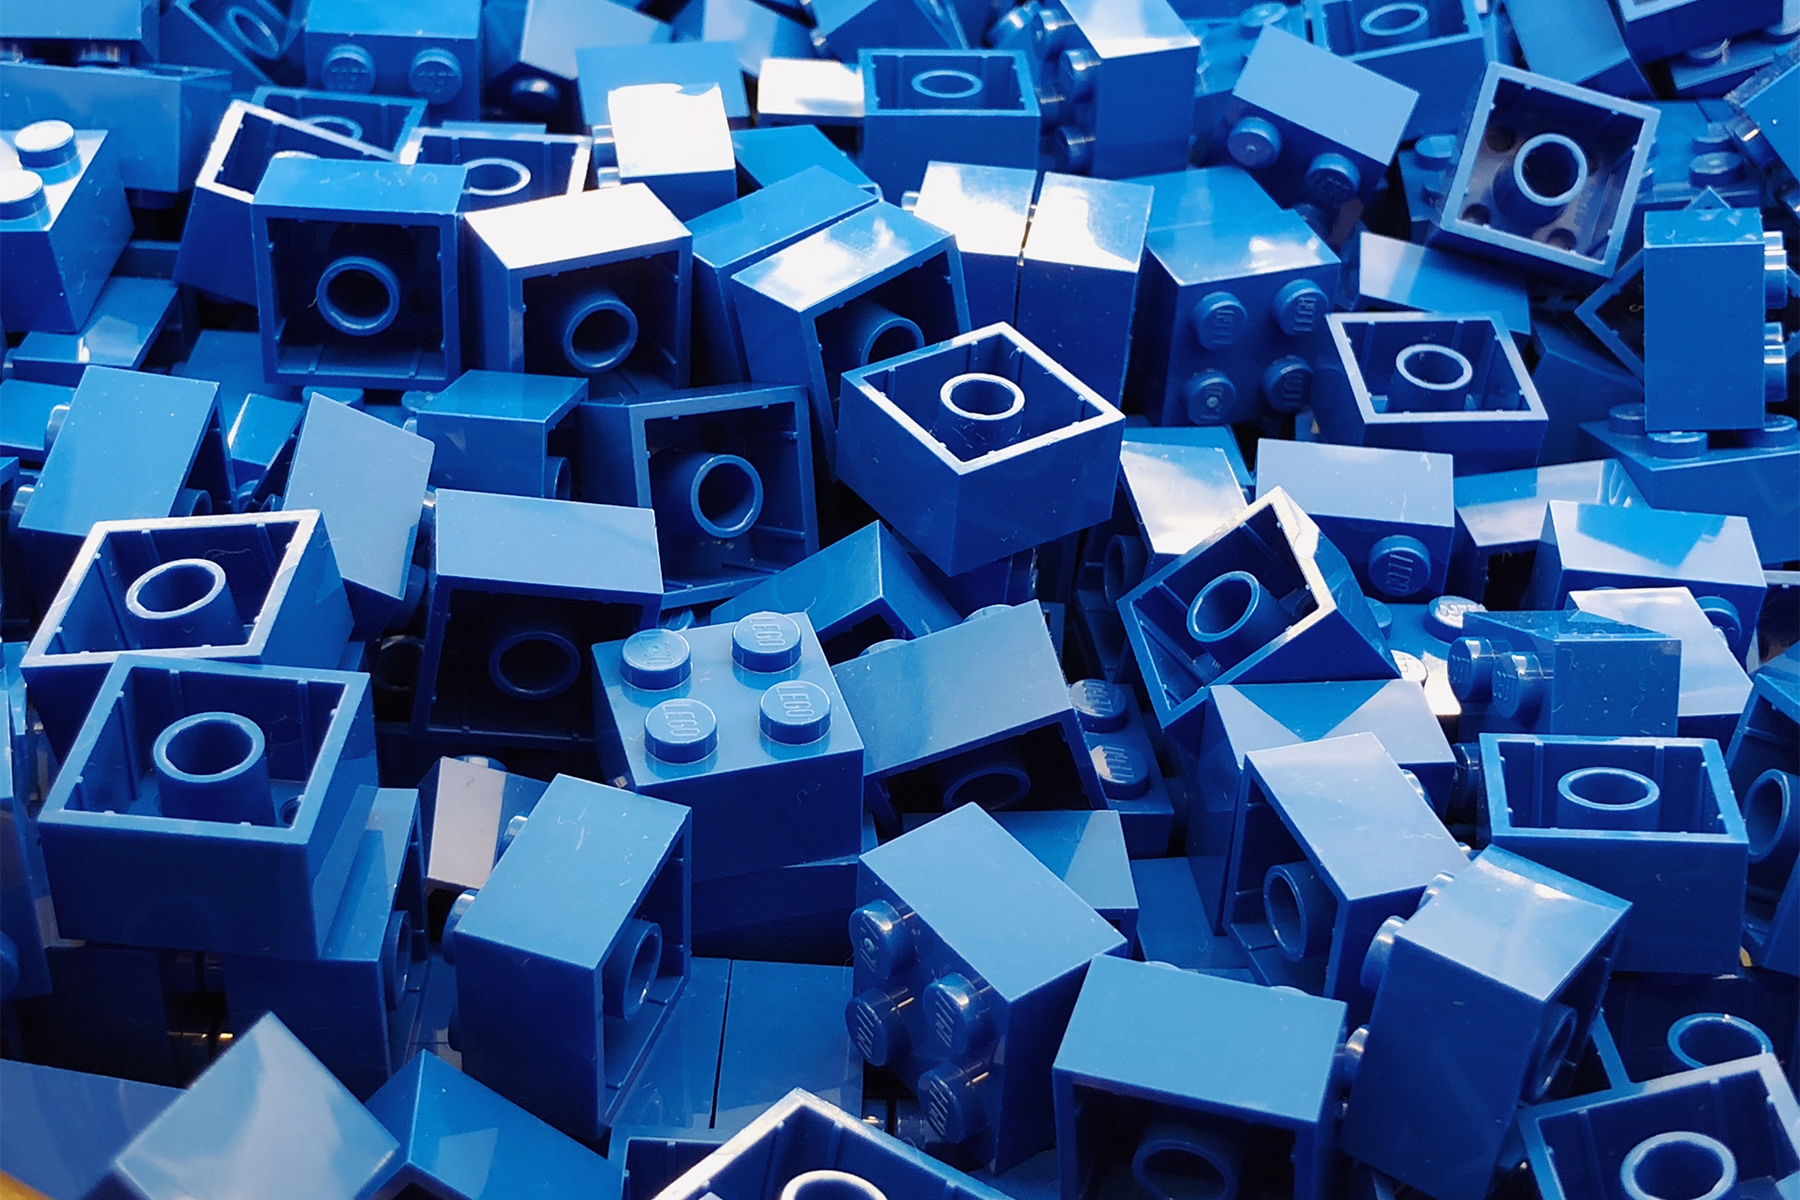 Pile of blue small lego bricks